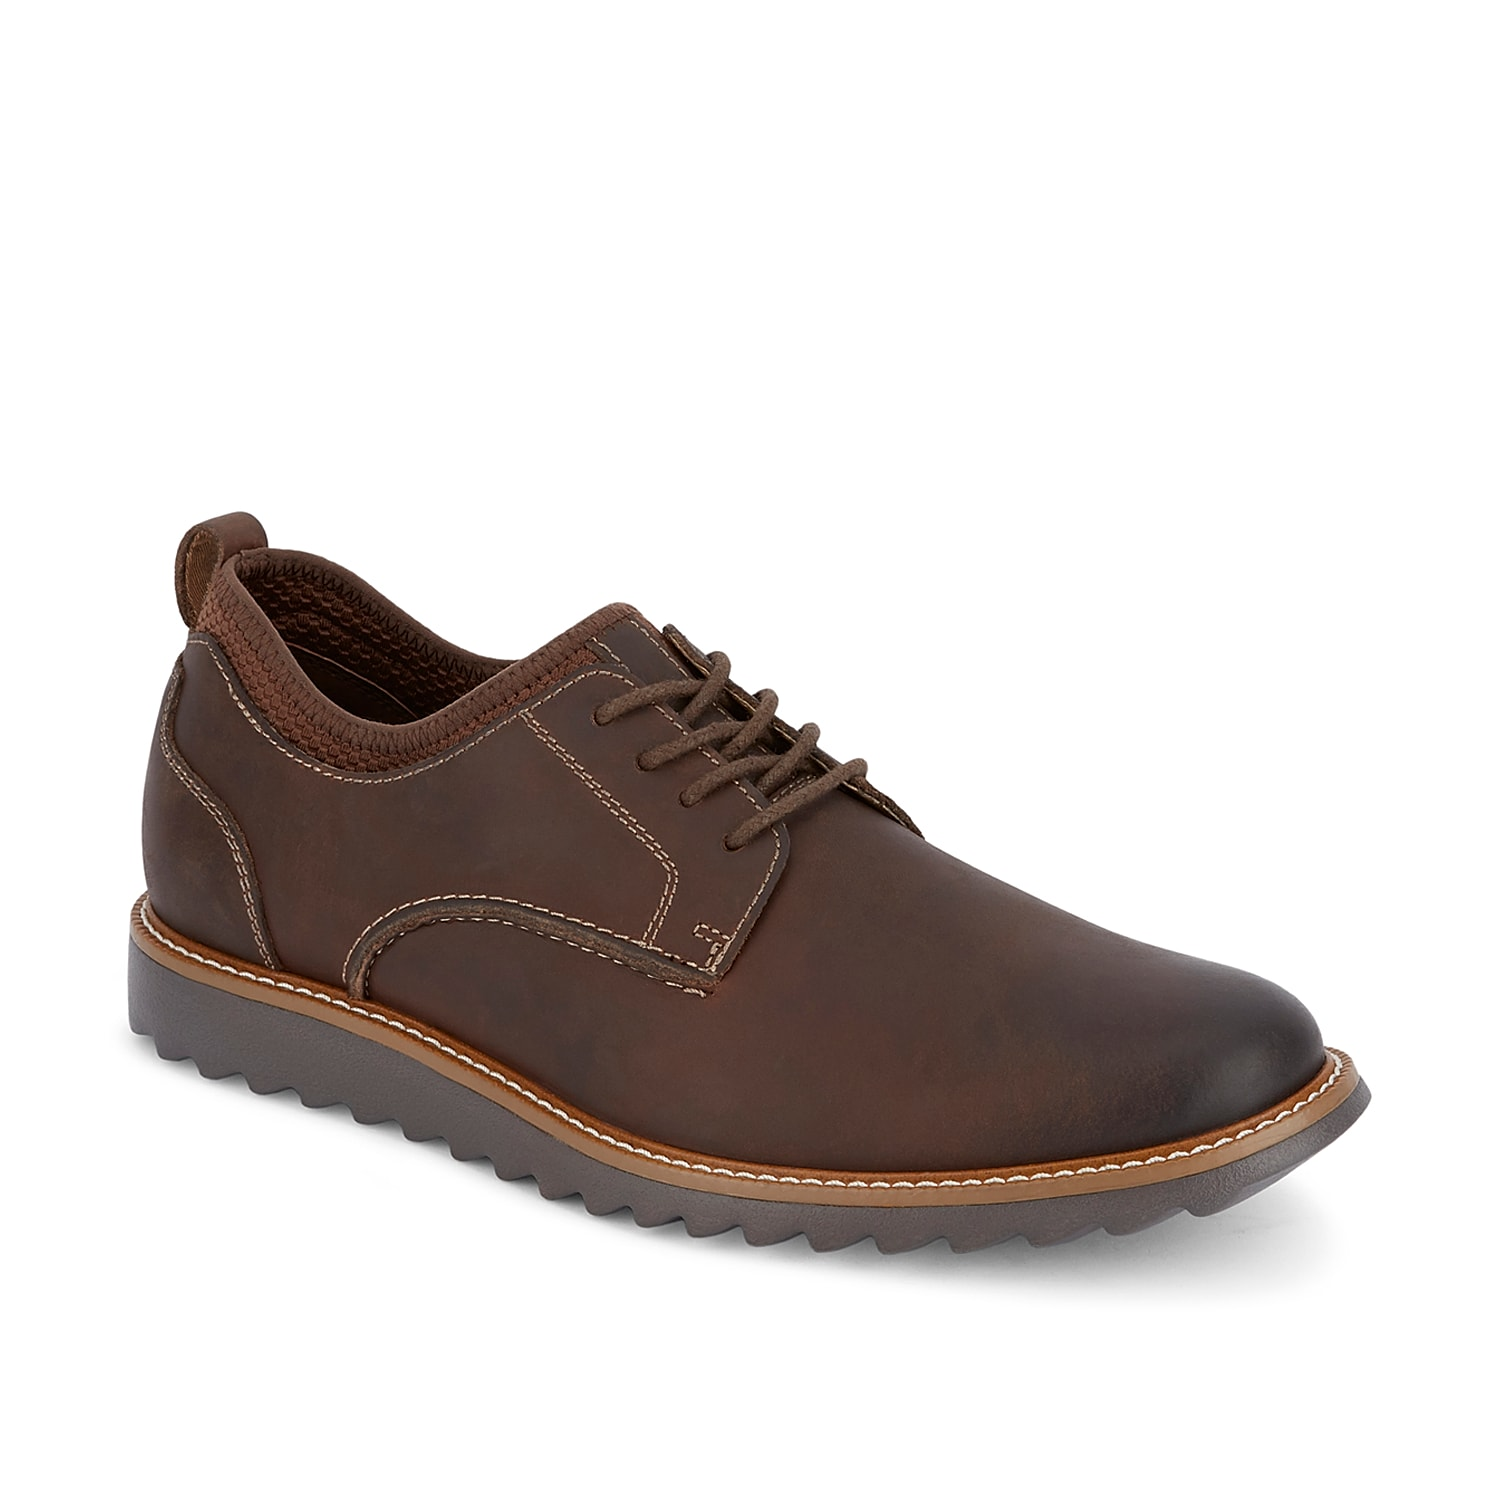 Complete work or weekend looks with the Dockers Elon oxford. These leather lace-ups feature a supportive footbed and plush midsole to ensure daylong comfort.